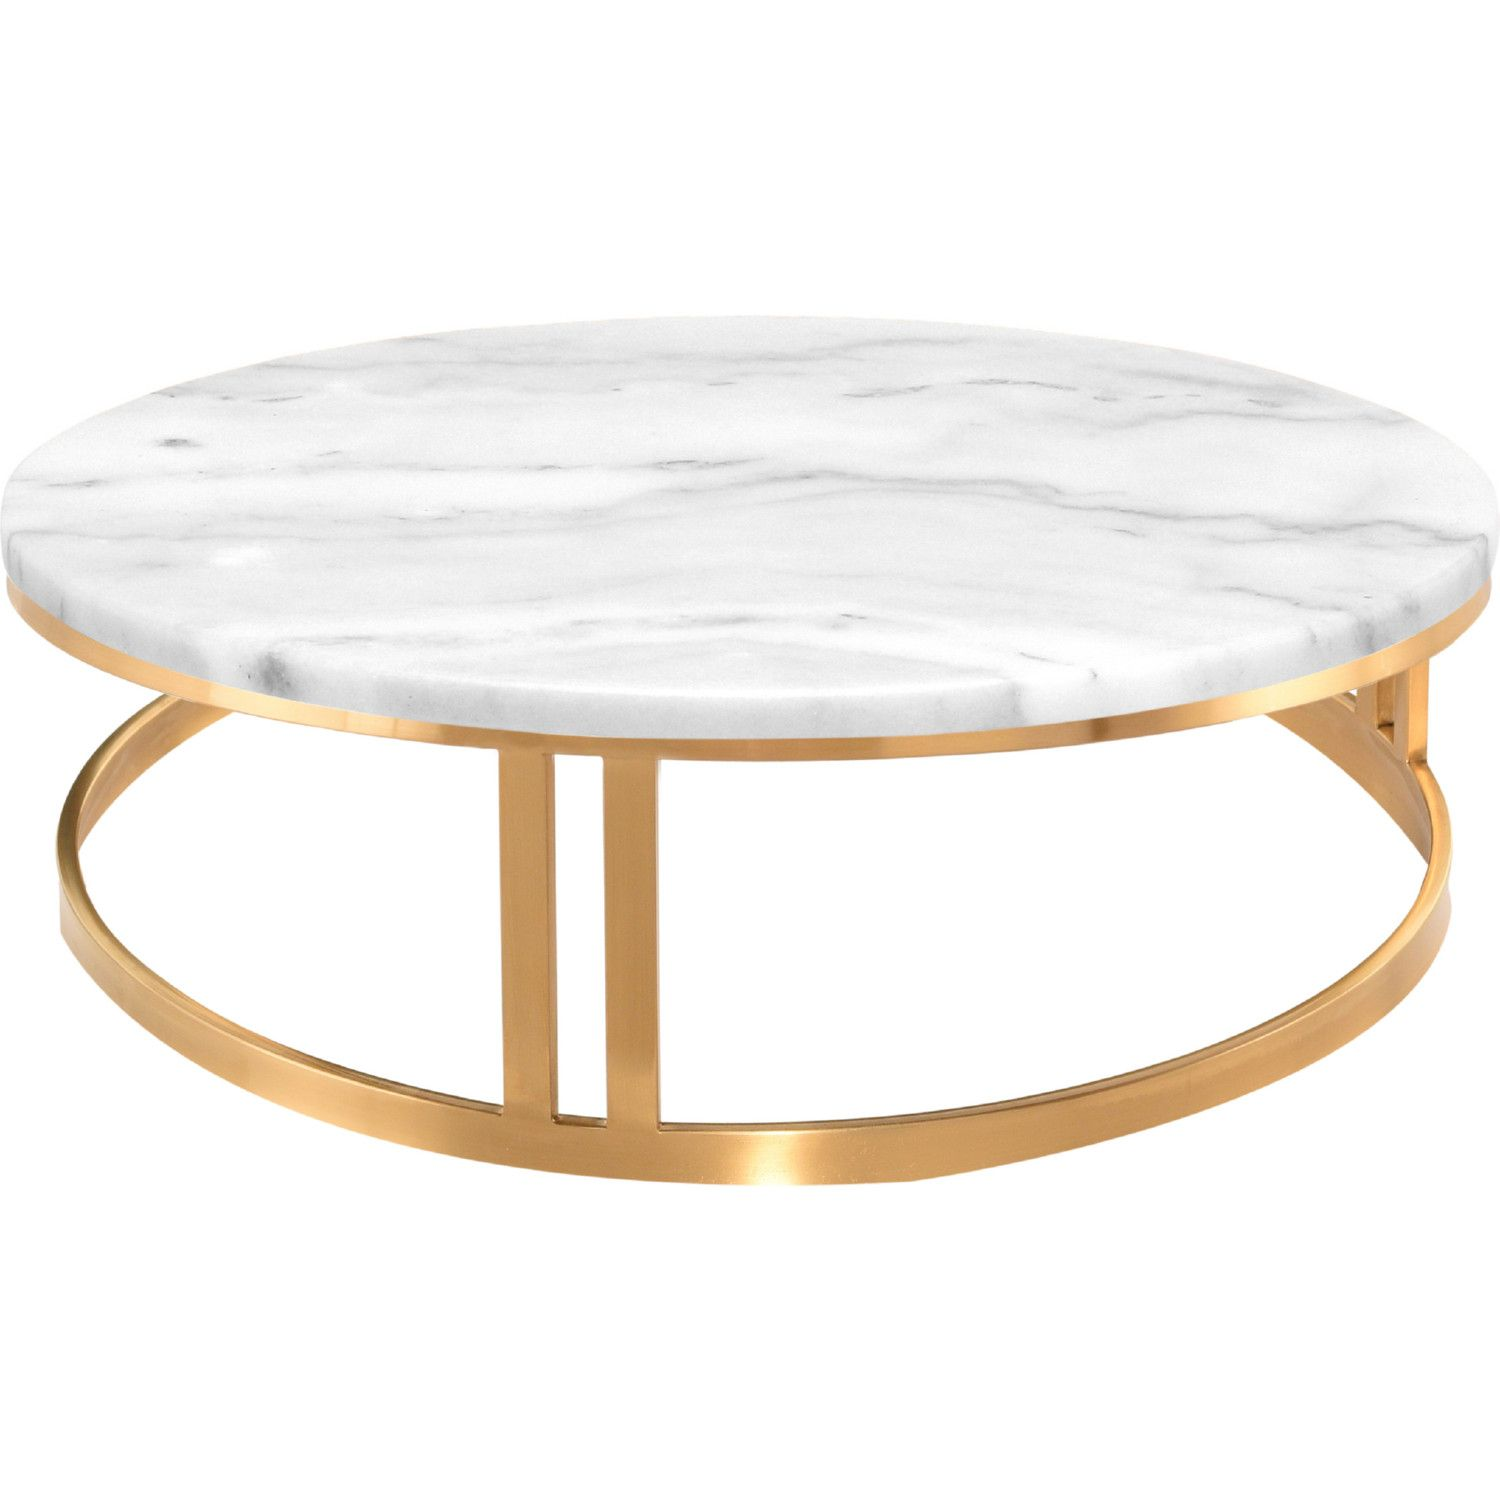 Nuevo Modern Furniture Hgna420 Nicola Coffee Table White Marble On Brushed Gold In 2021 Coffee Table White Steel Table Base Gold Coffee Table [ 1500 x 1500 Pixel ]